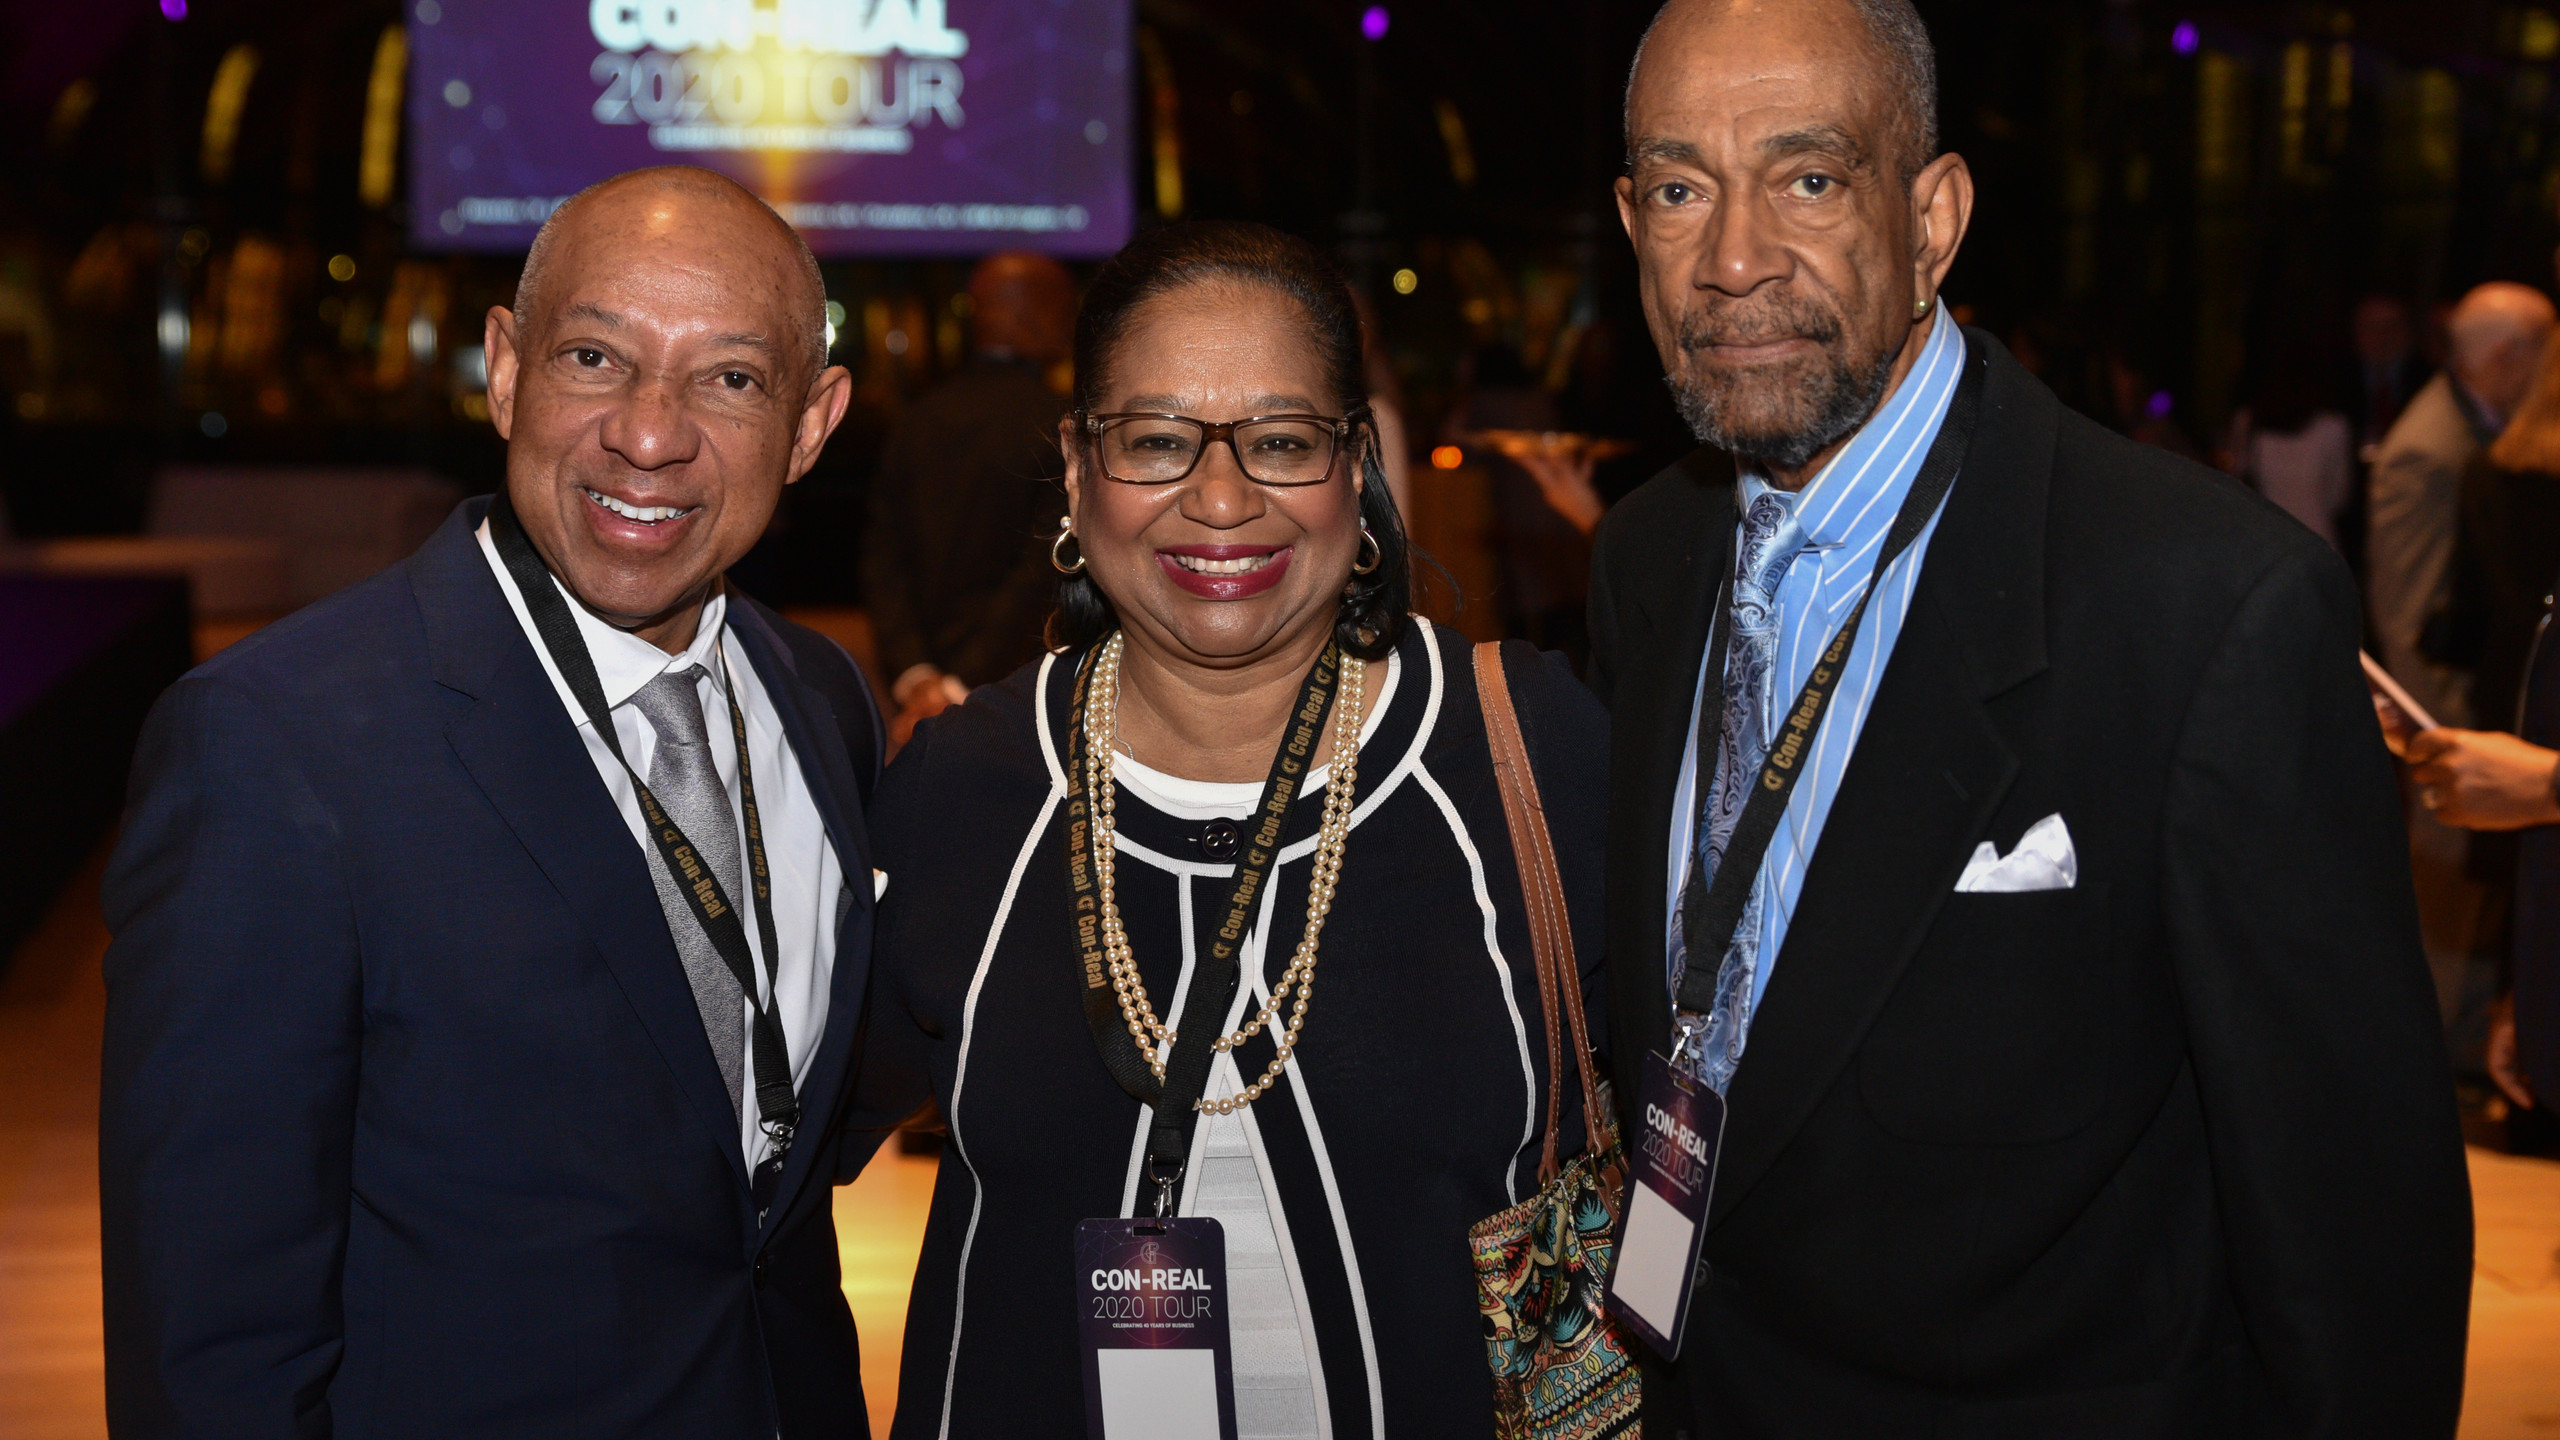 Con-Real CEO Gerald Alley with two event attendees